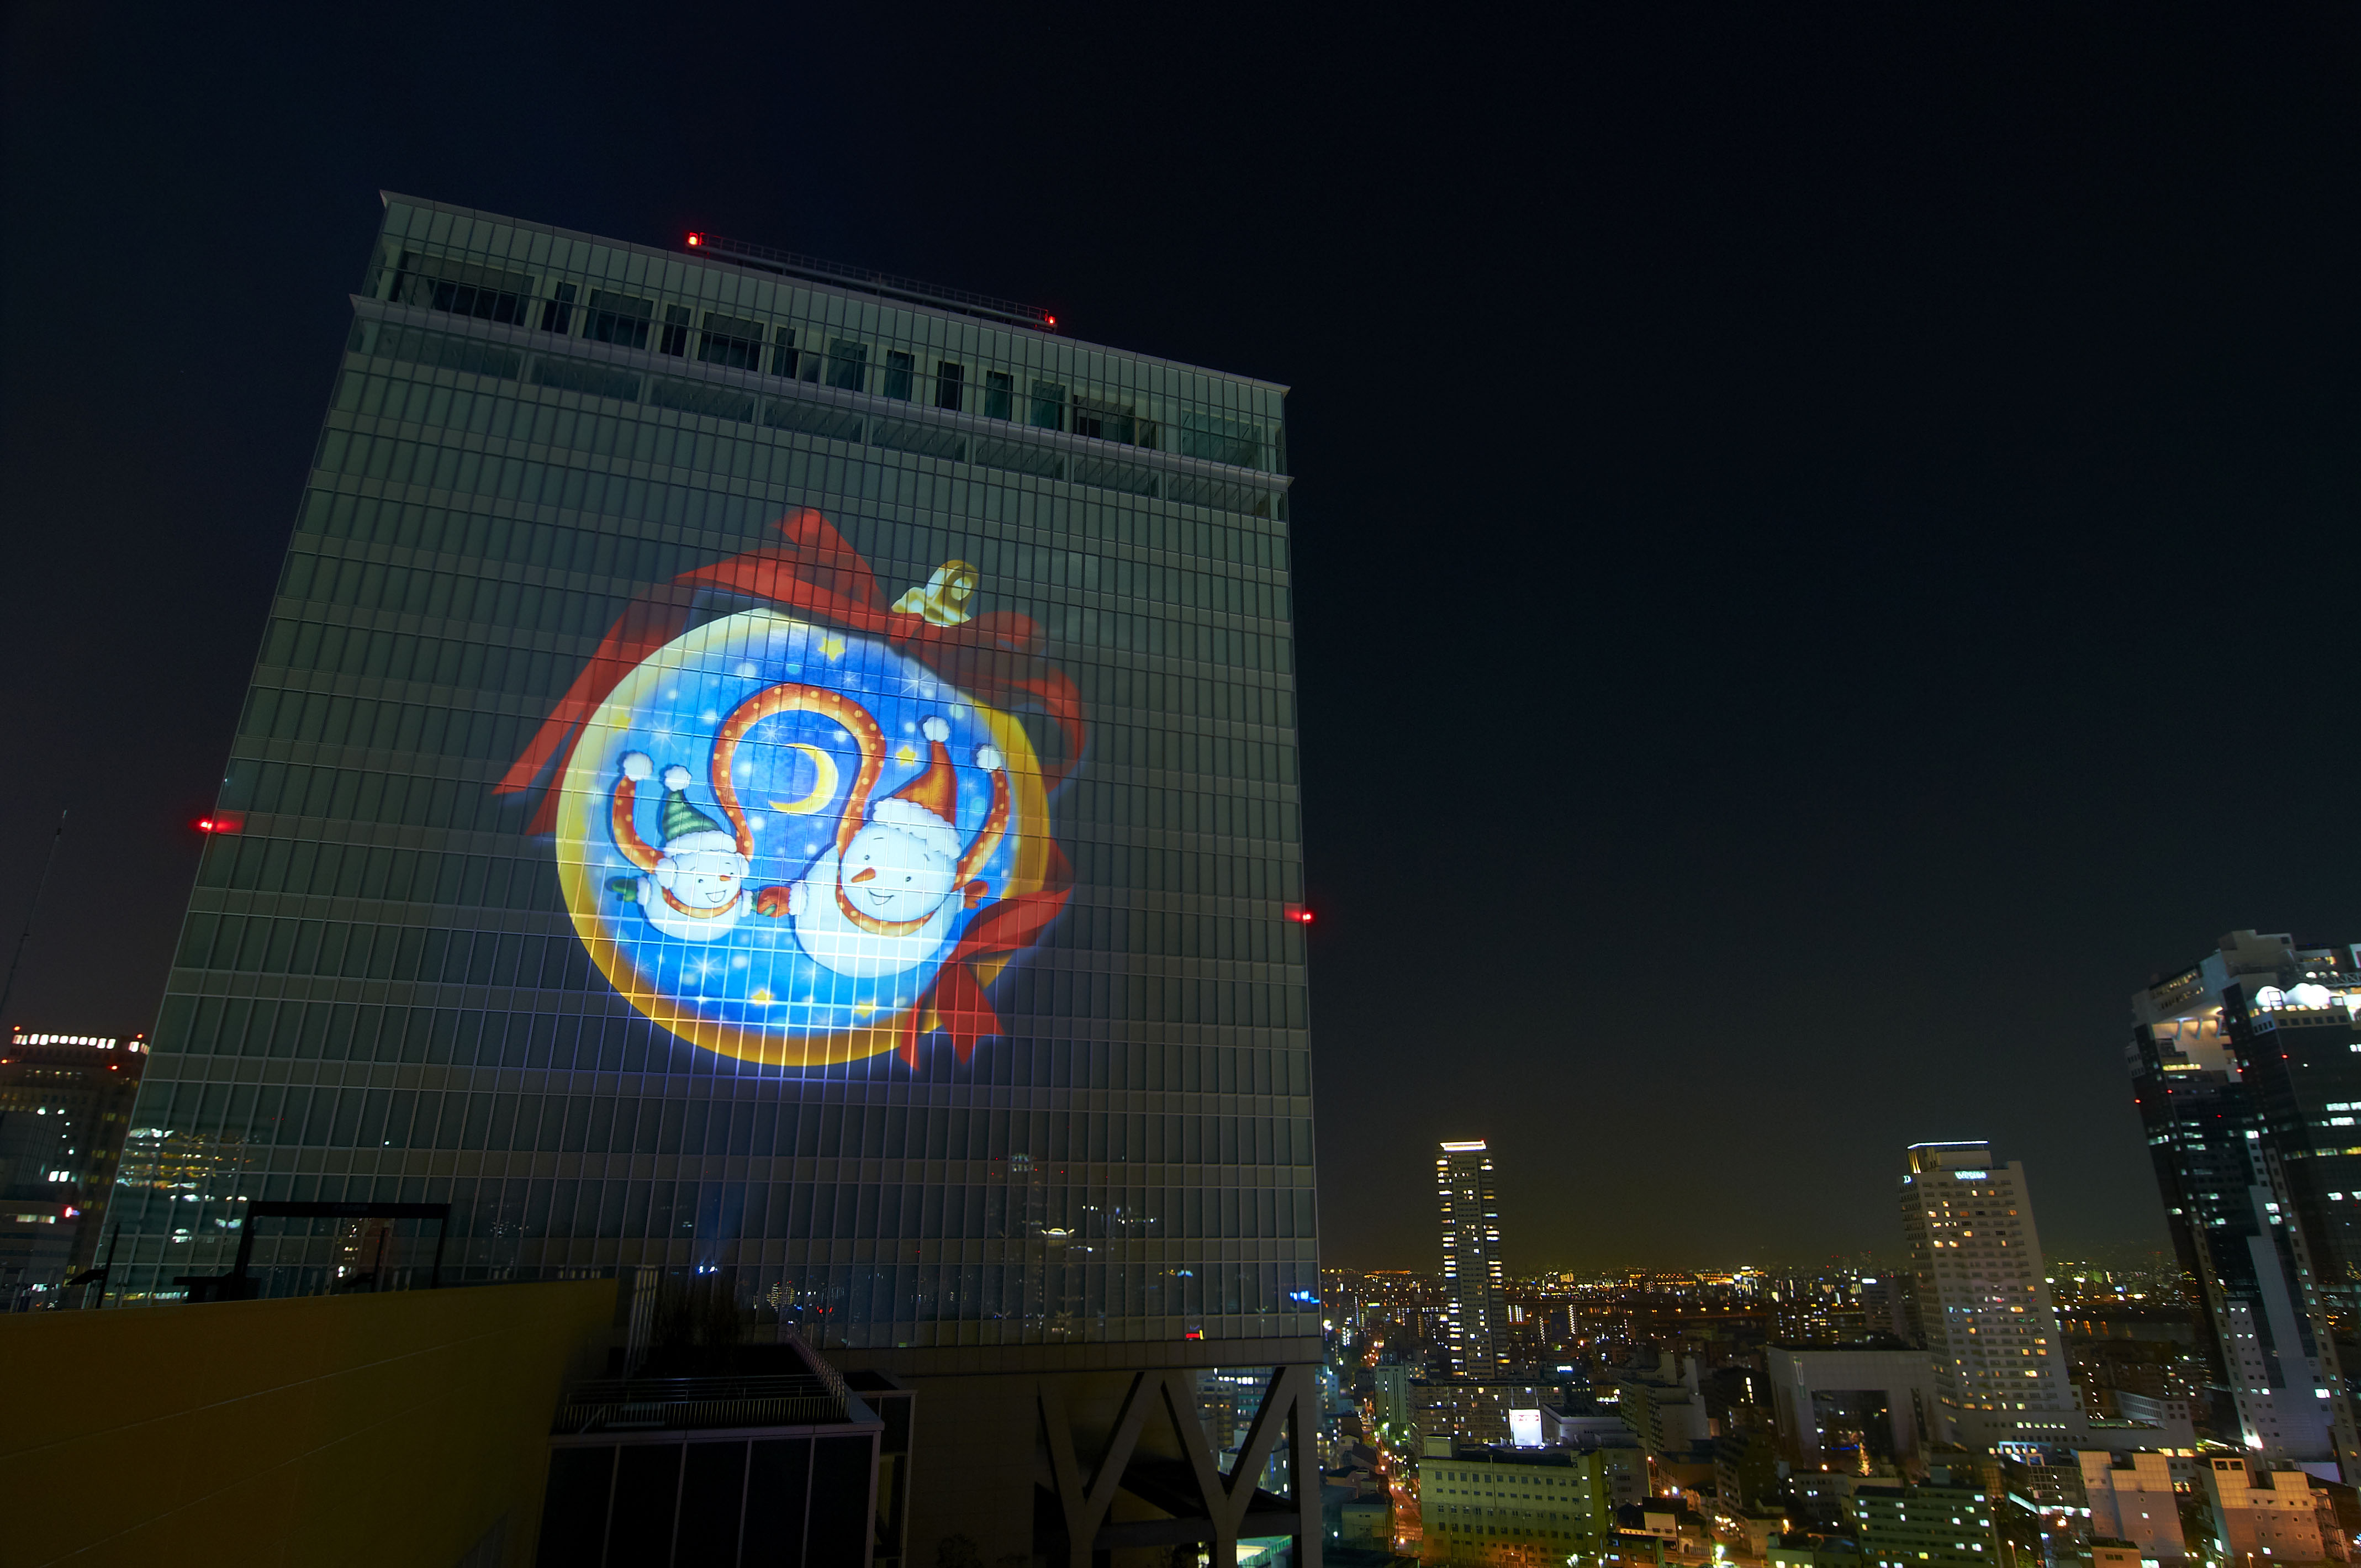 Frosty reception: Children's drawings are projected on the surface of Osaka Station's North Gate Building at last year's Umeda Snowman Festival.